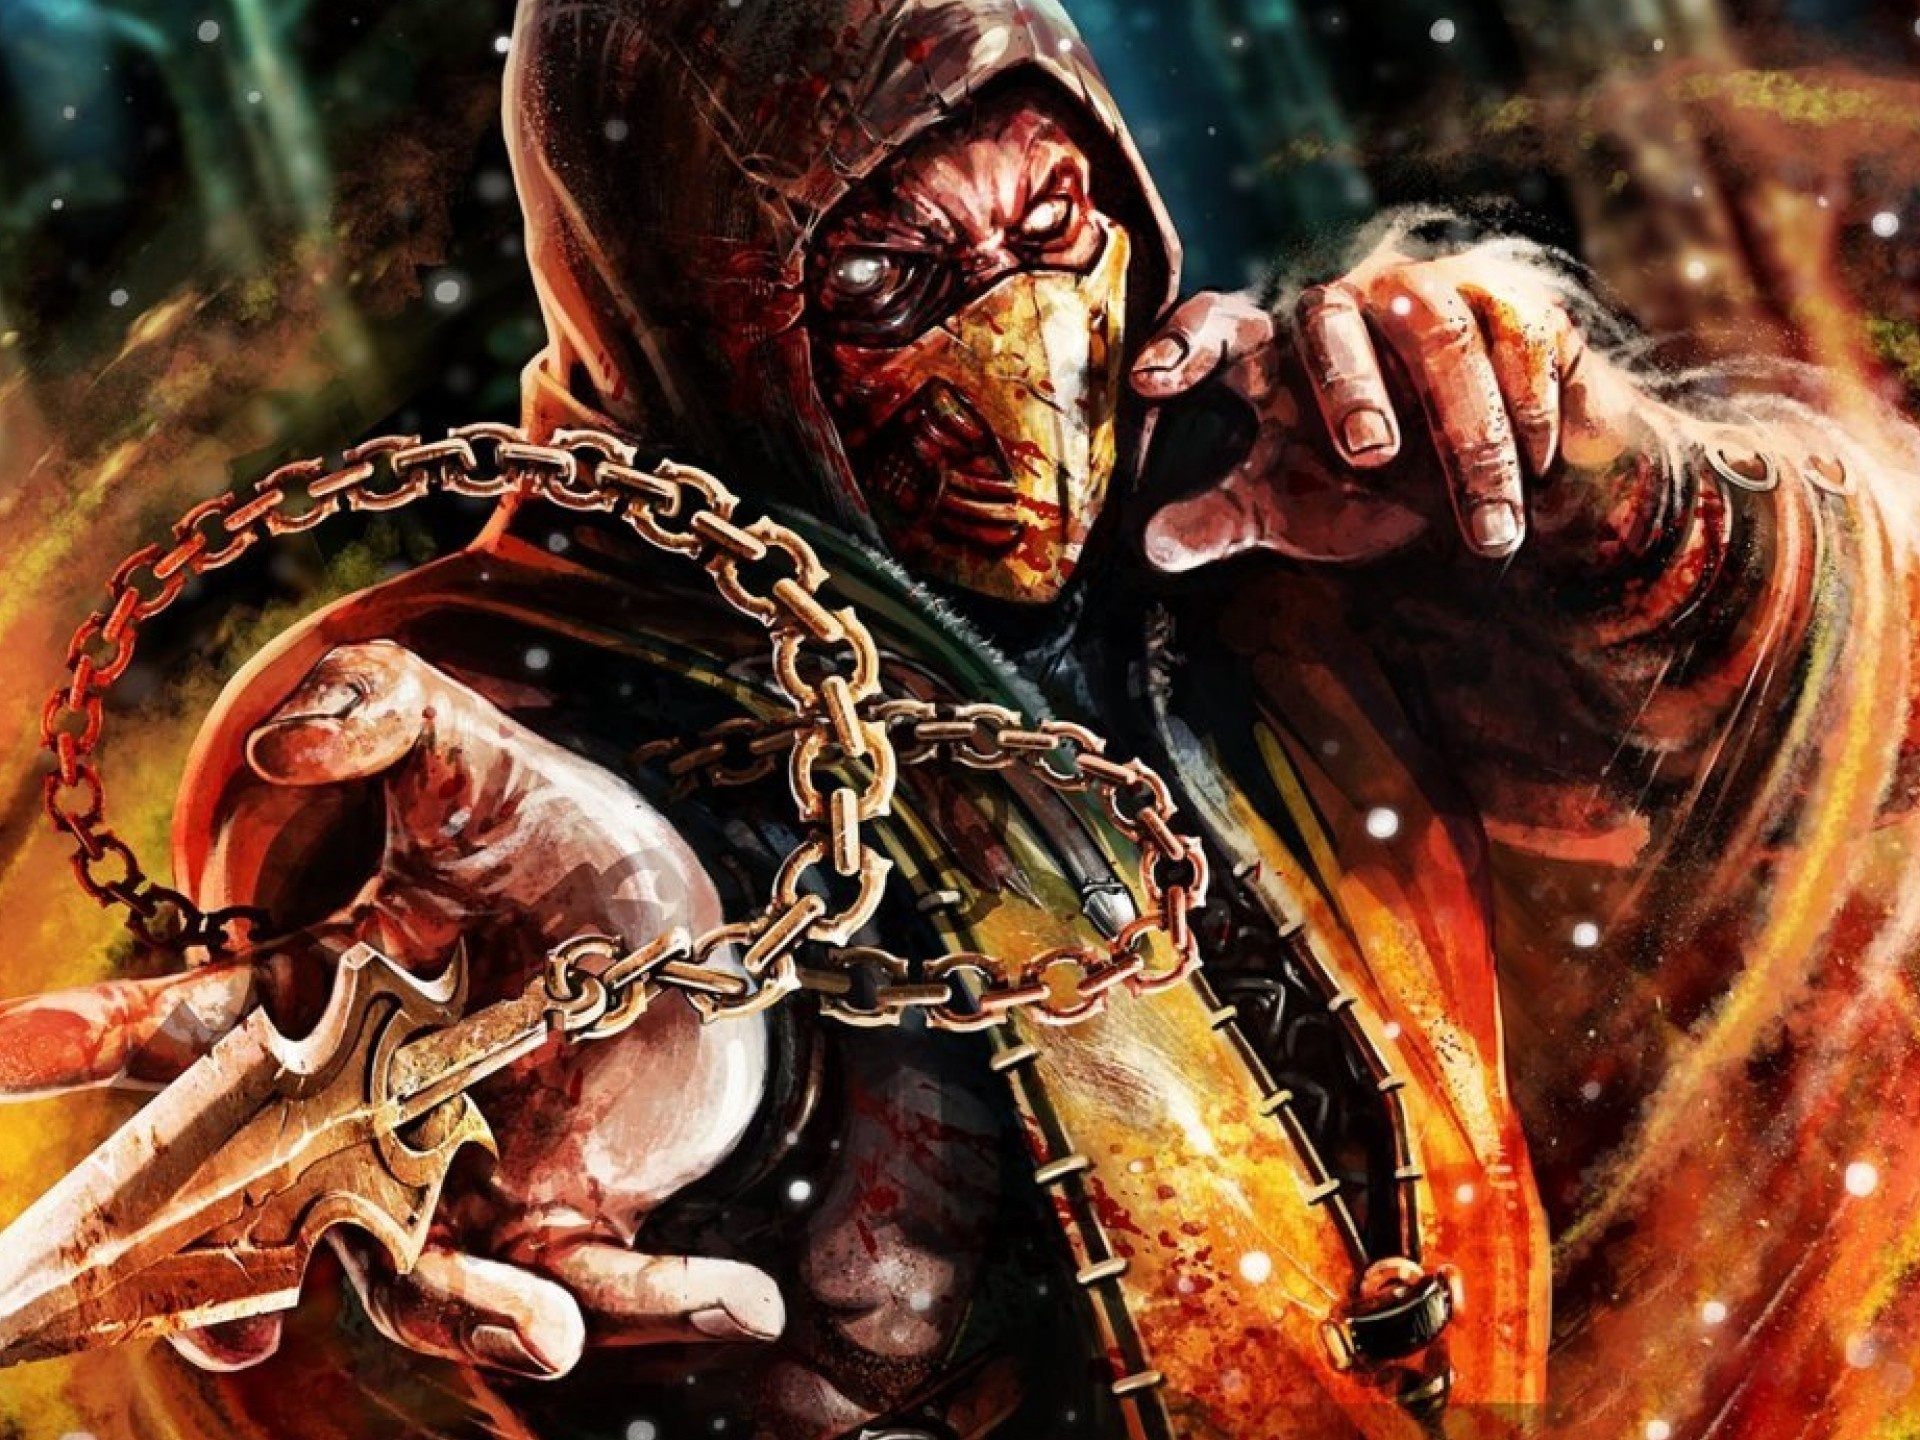 Mortal Kombat X Scorpio 3d Cool Video Games Wallpapers: 1920x1440 Scorpion Mortal Kombat X Desktop PC And Mac